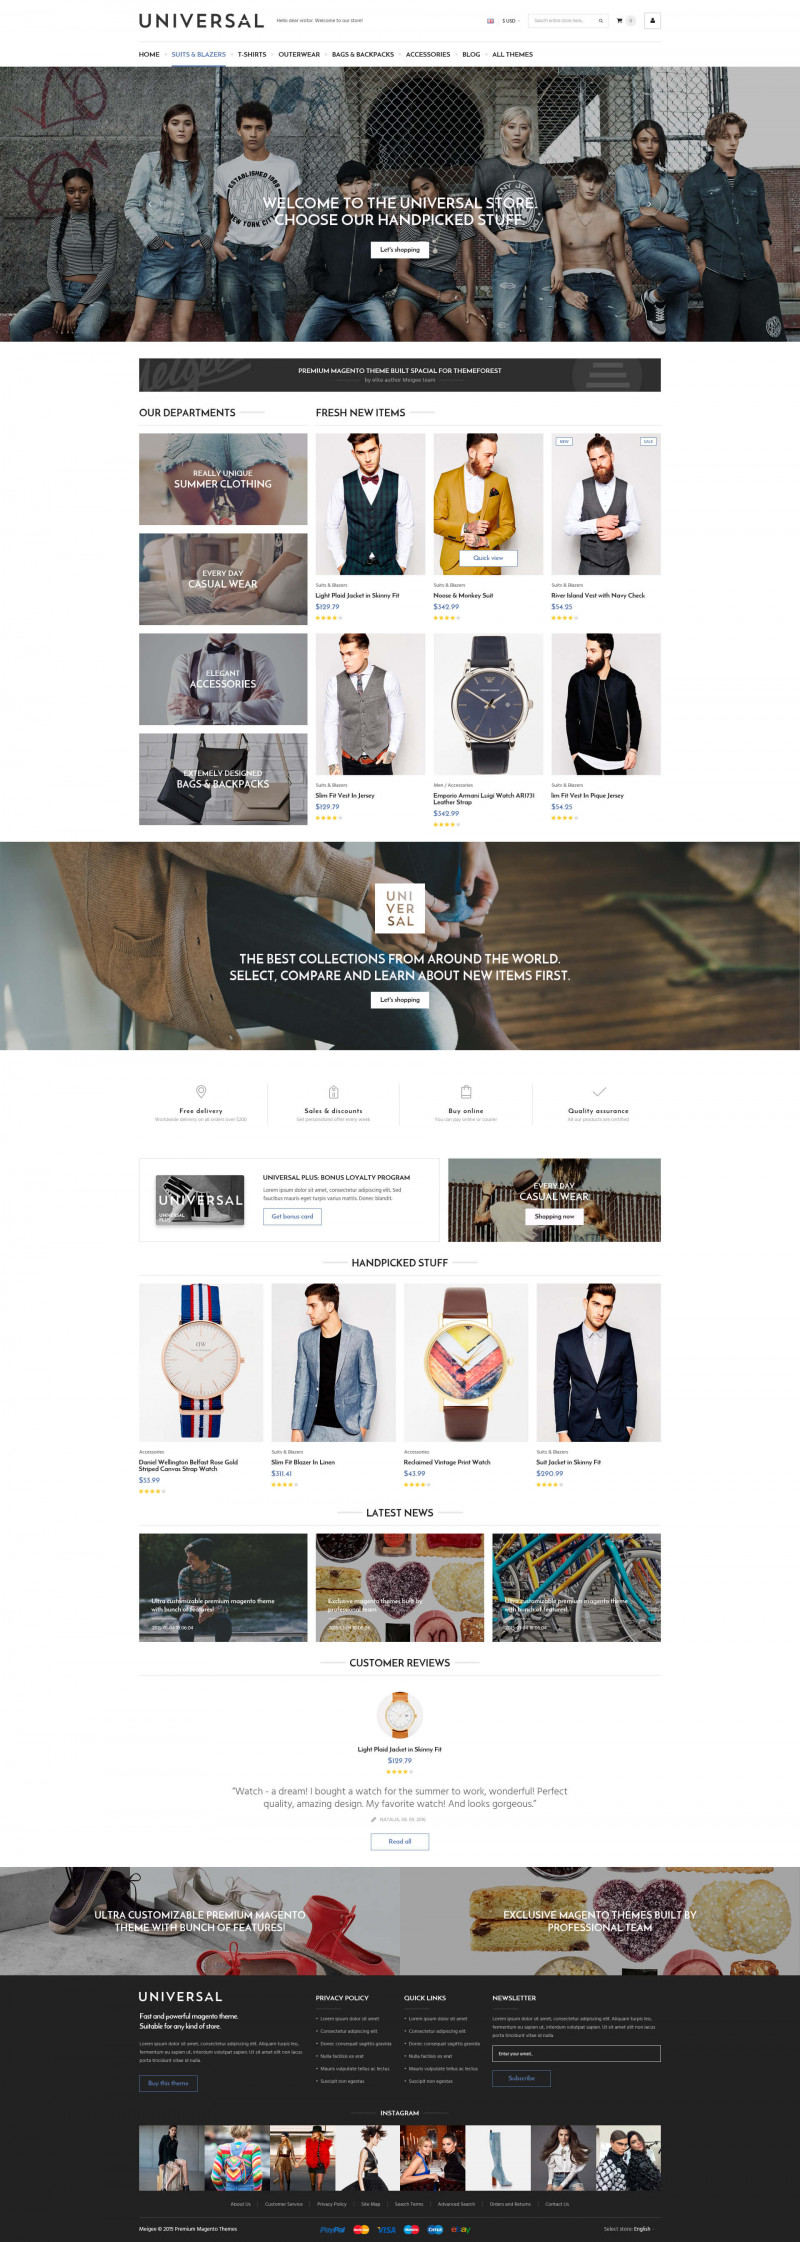 Magento Themes & Templates from Meigee